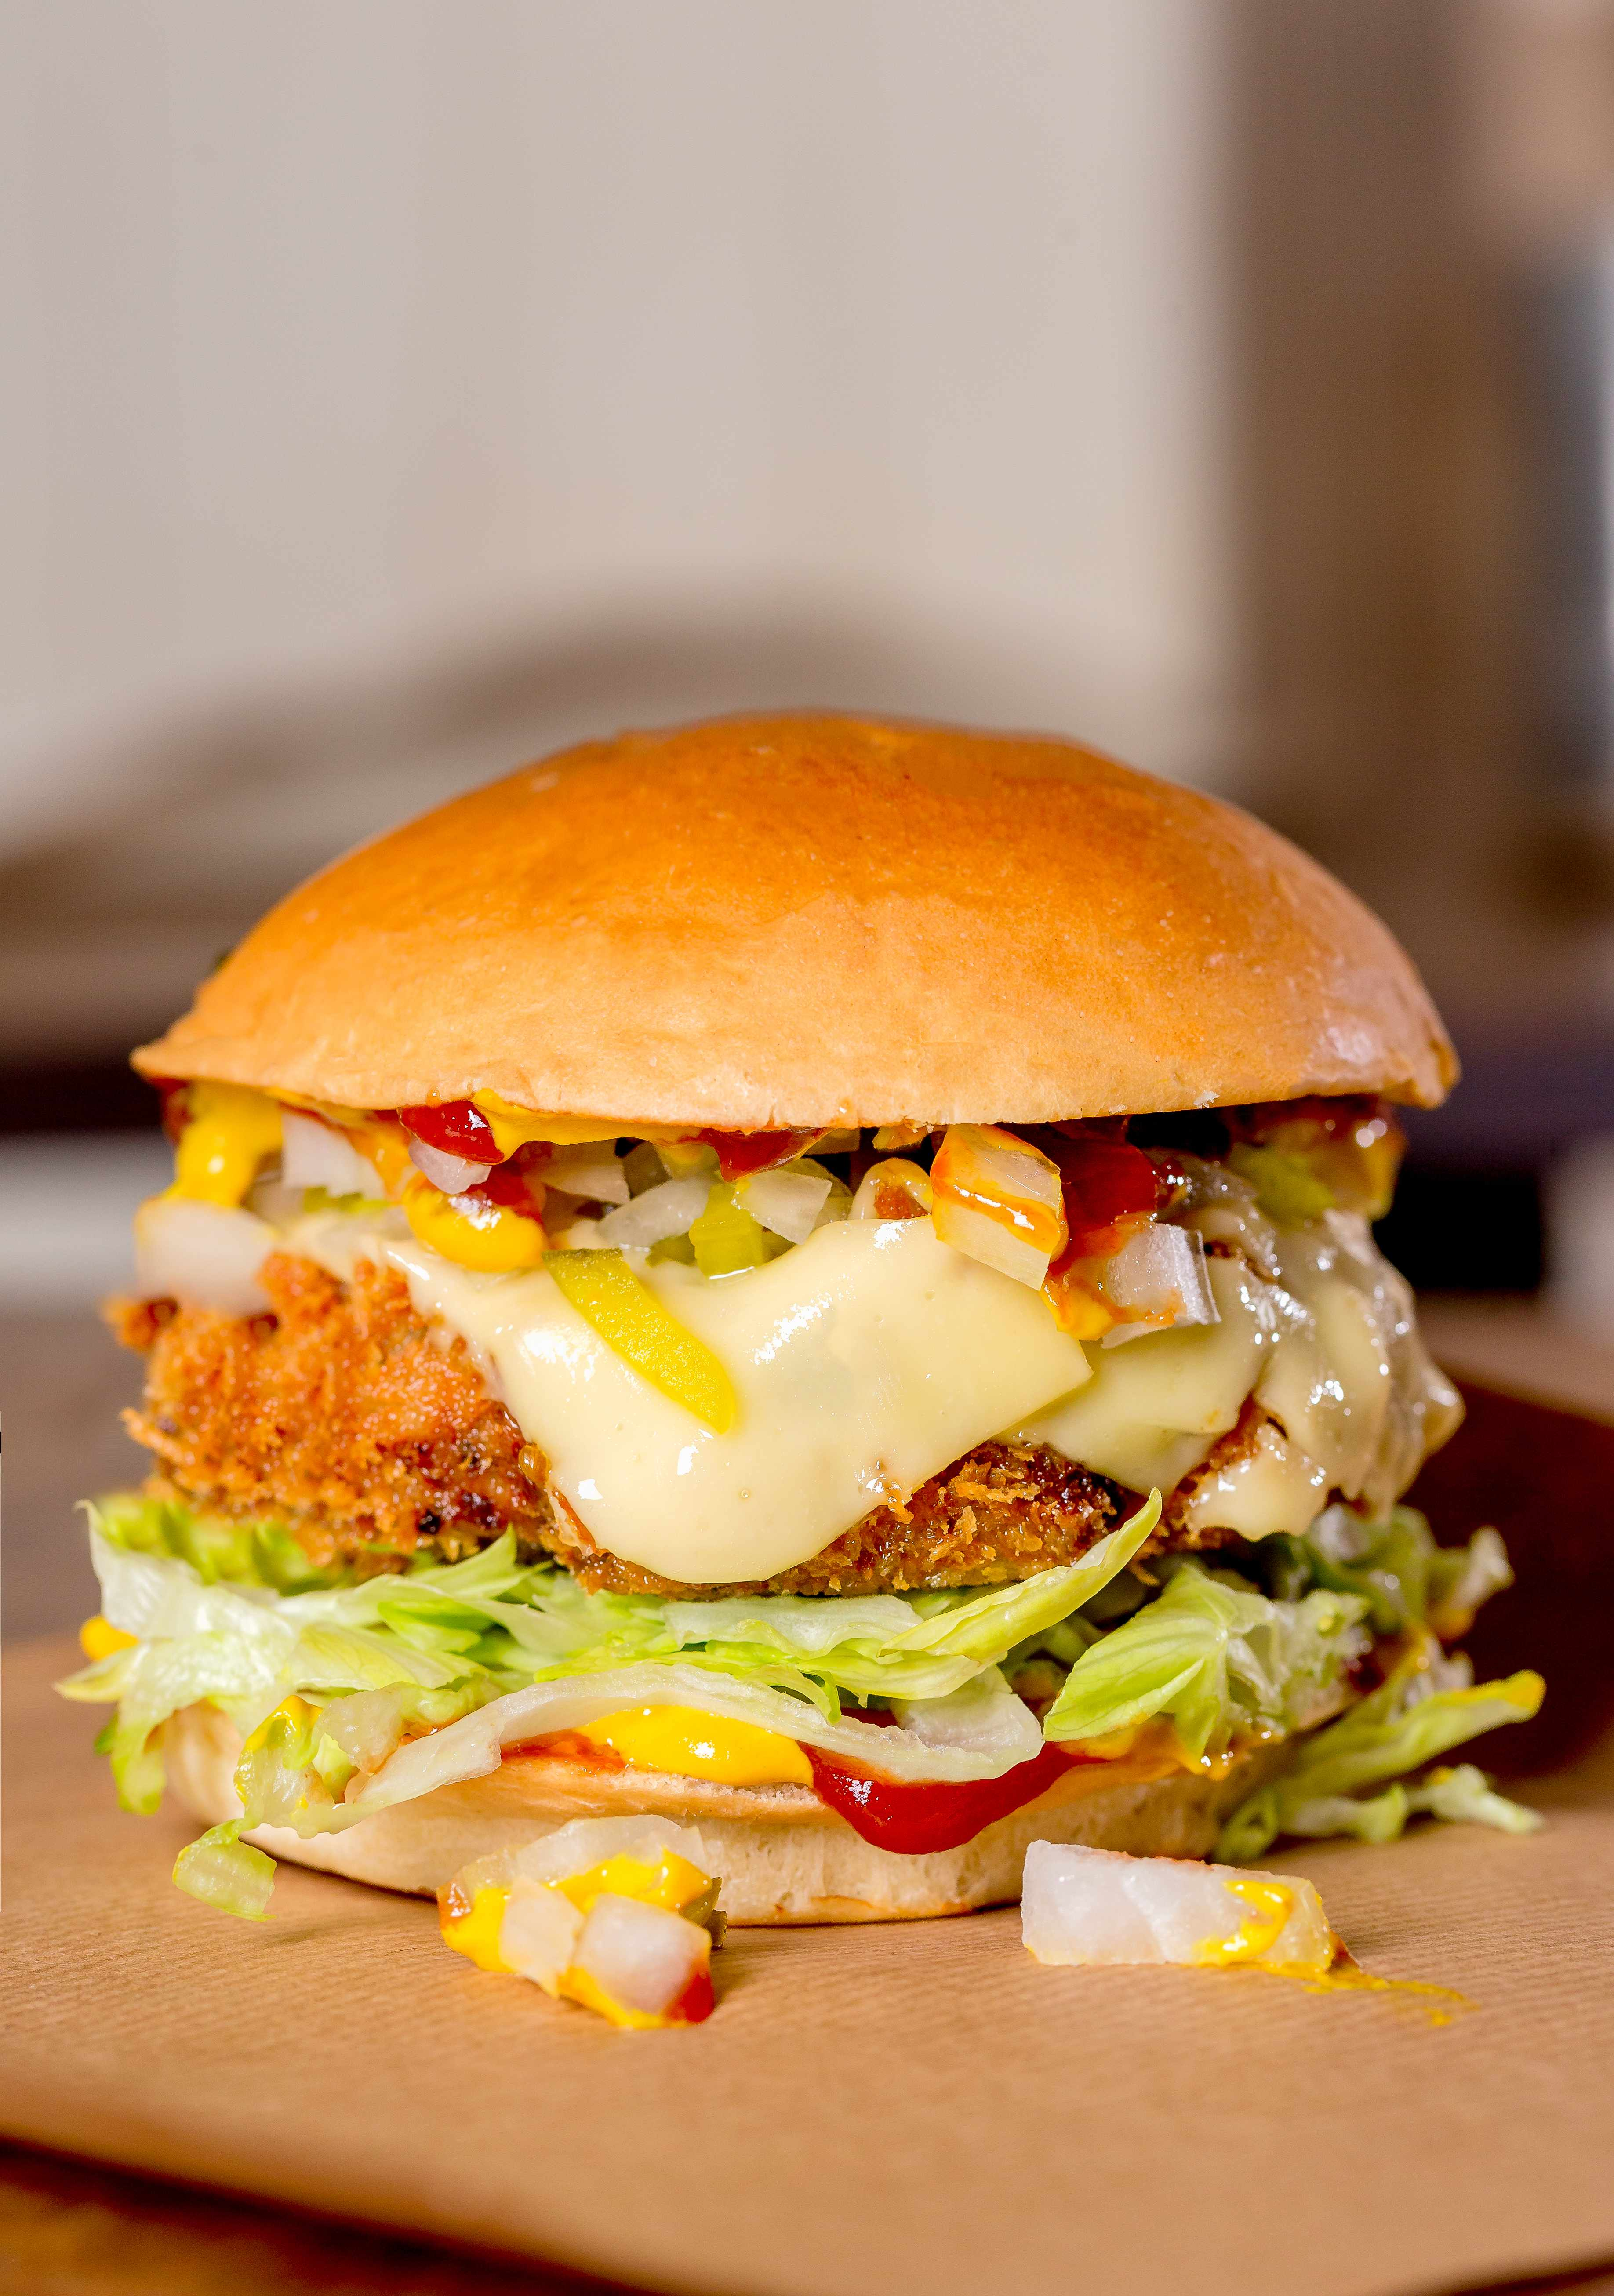 A burger with lettuce, cheese, a patty in a bun.